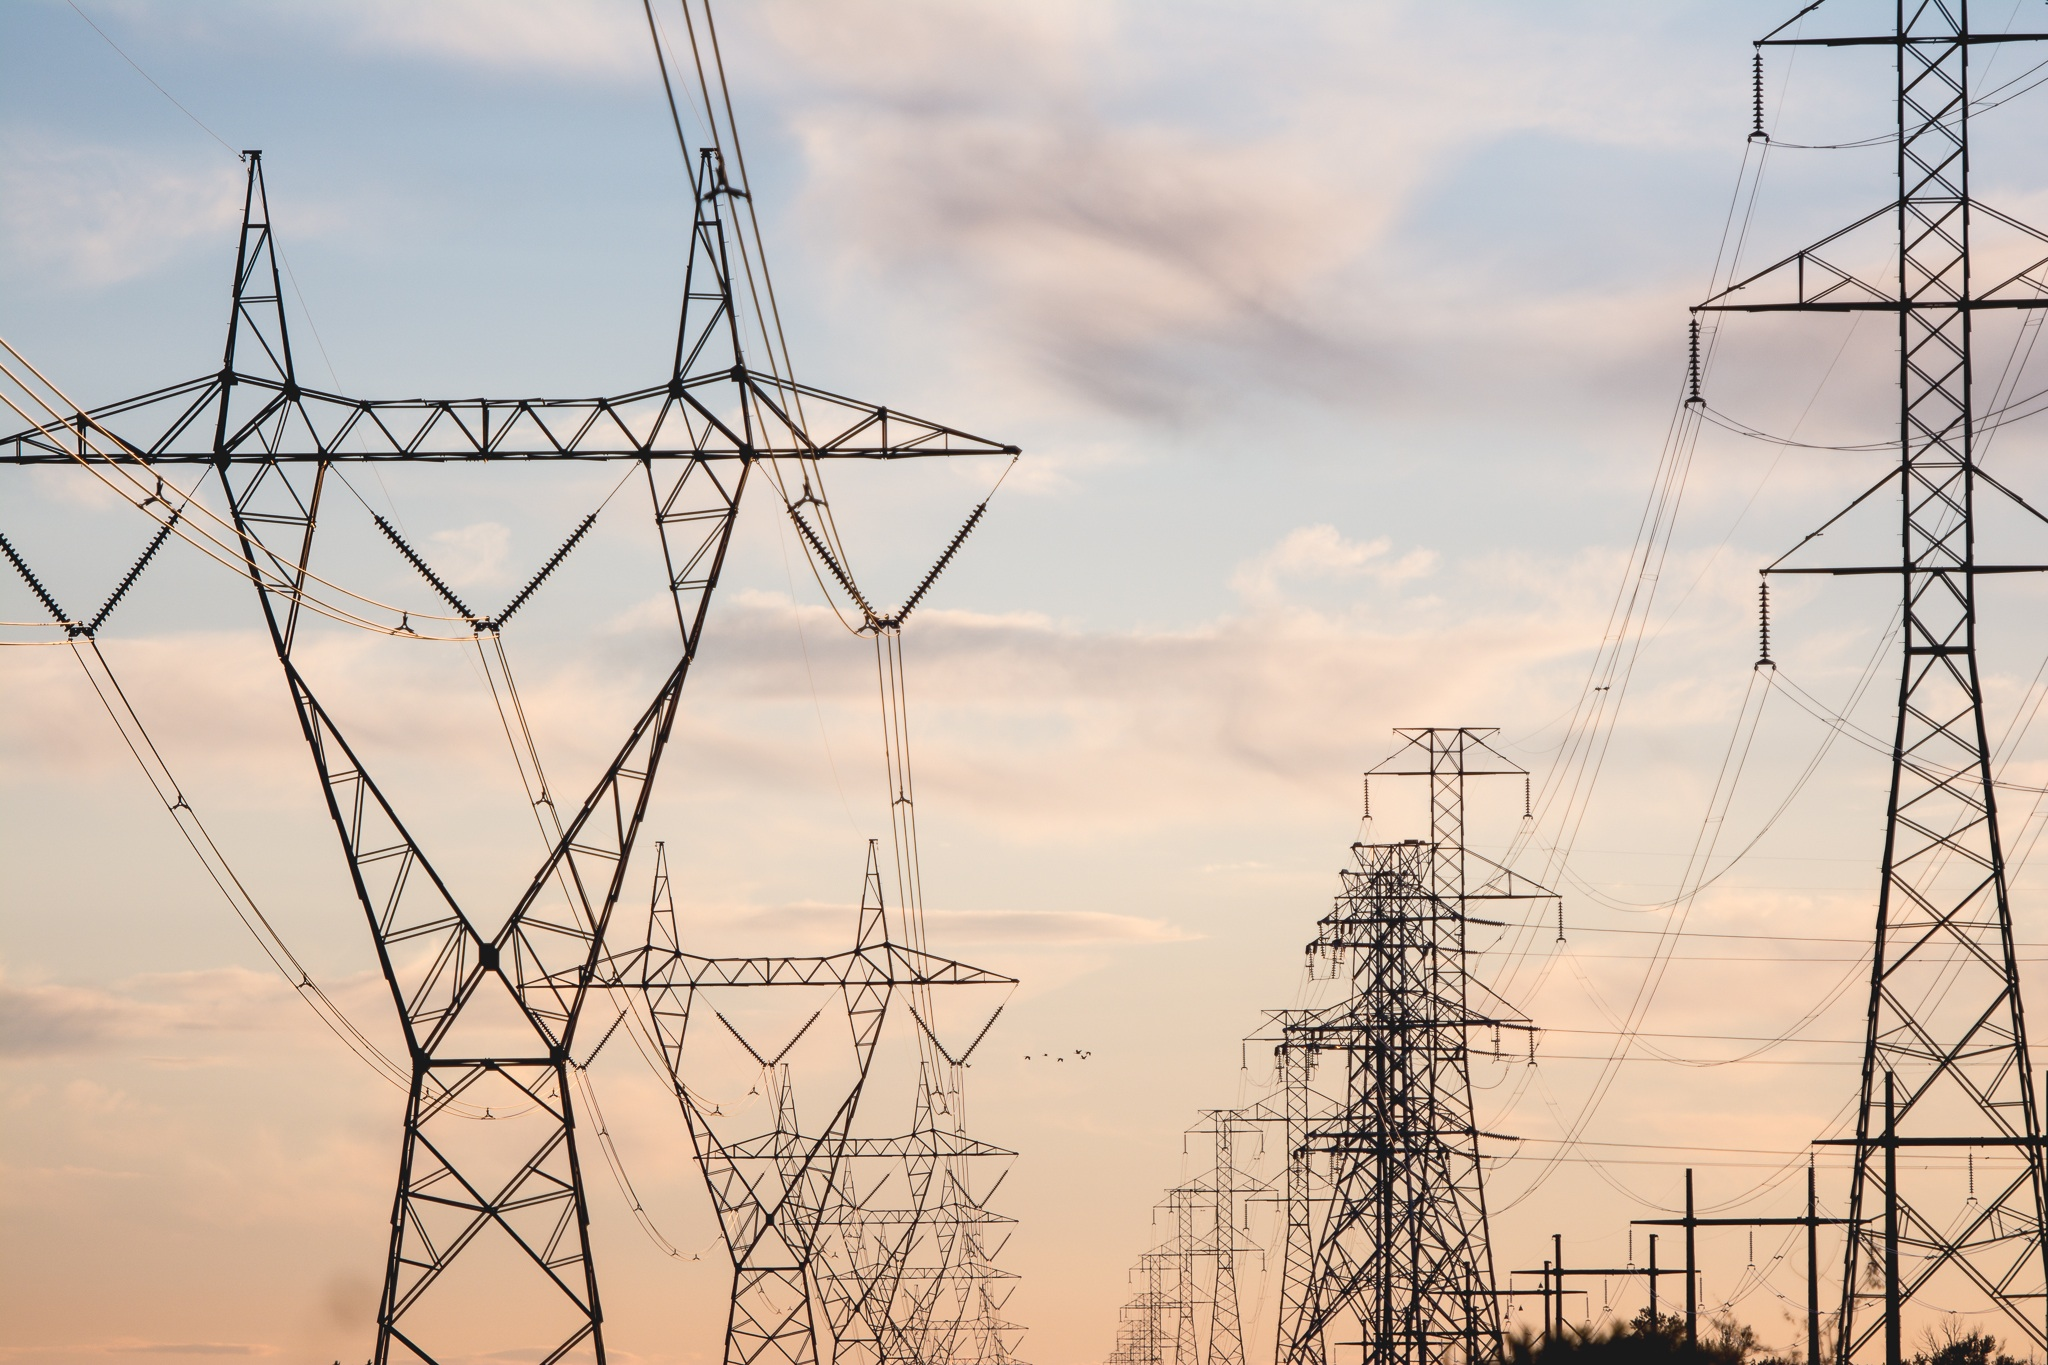 Pylons, electricity, towers, metal, grid, iron, cables, high voltage, light